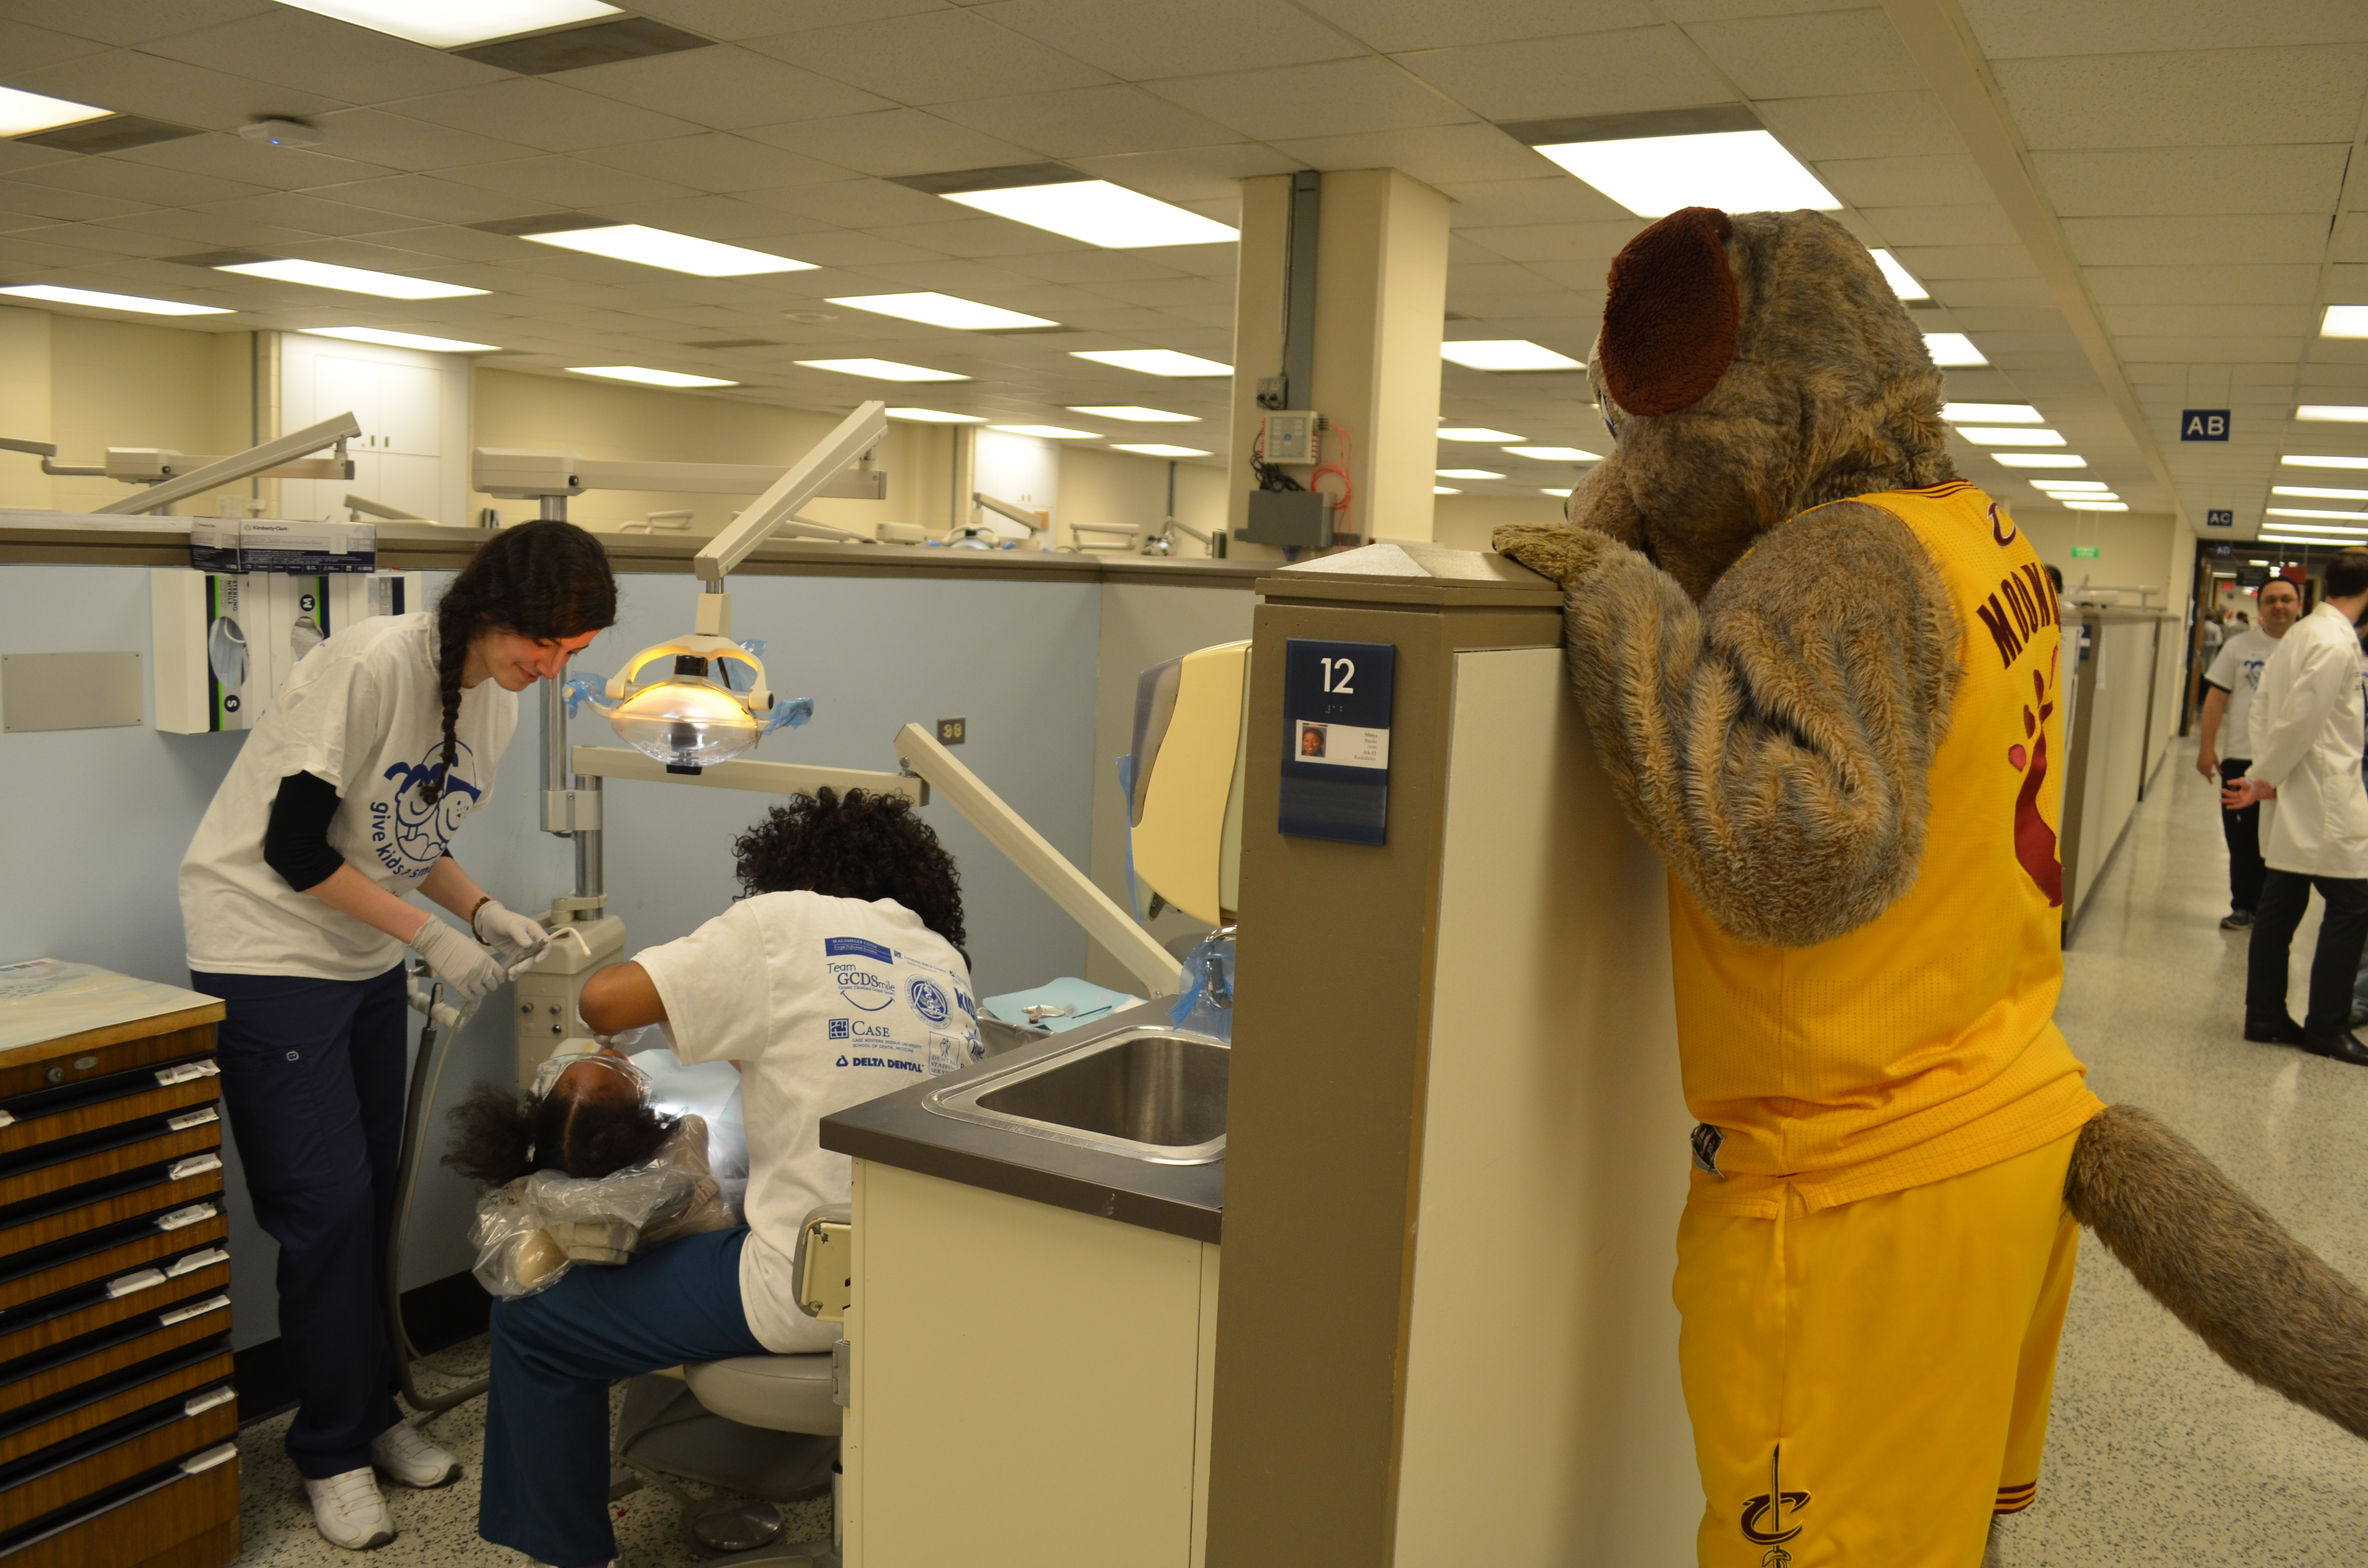 Volunteer dentists from the Greater Cleveland Dental Society